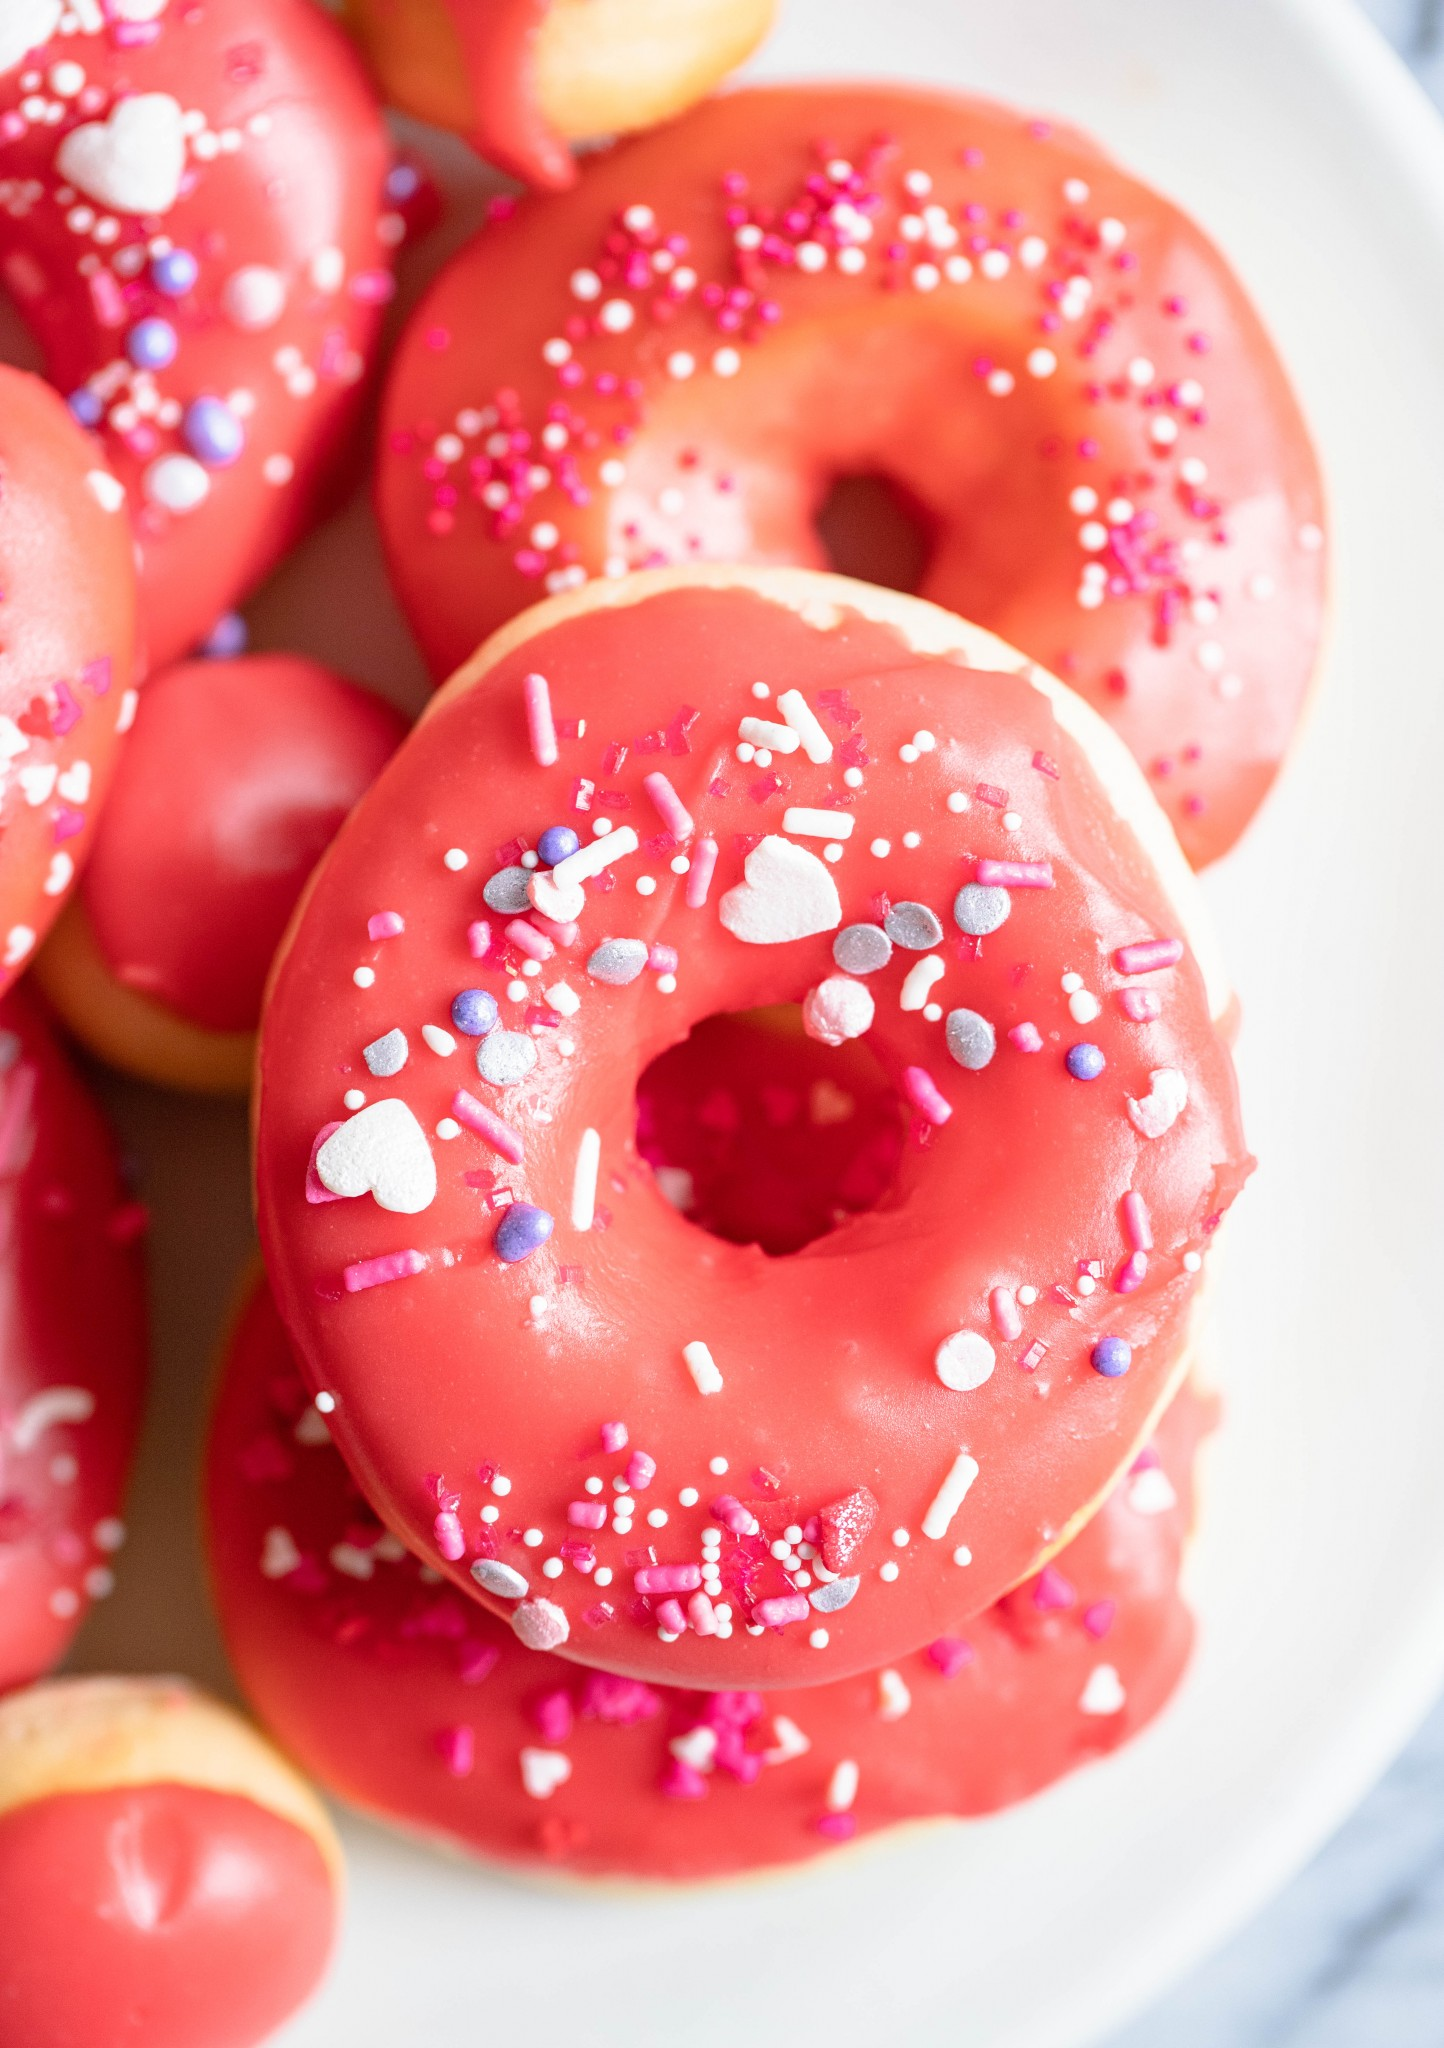 donuts sprinkled with red glaze and heart sprinkles